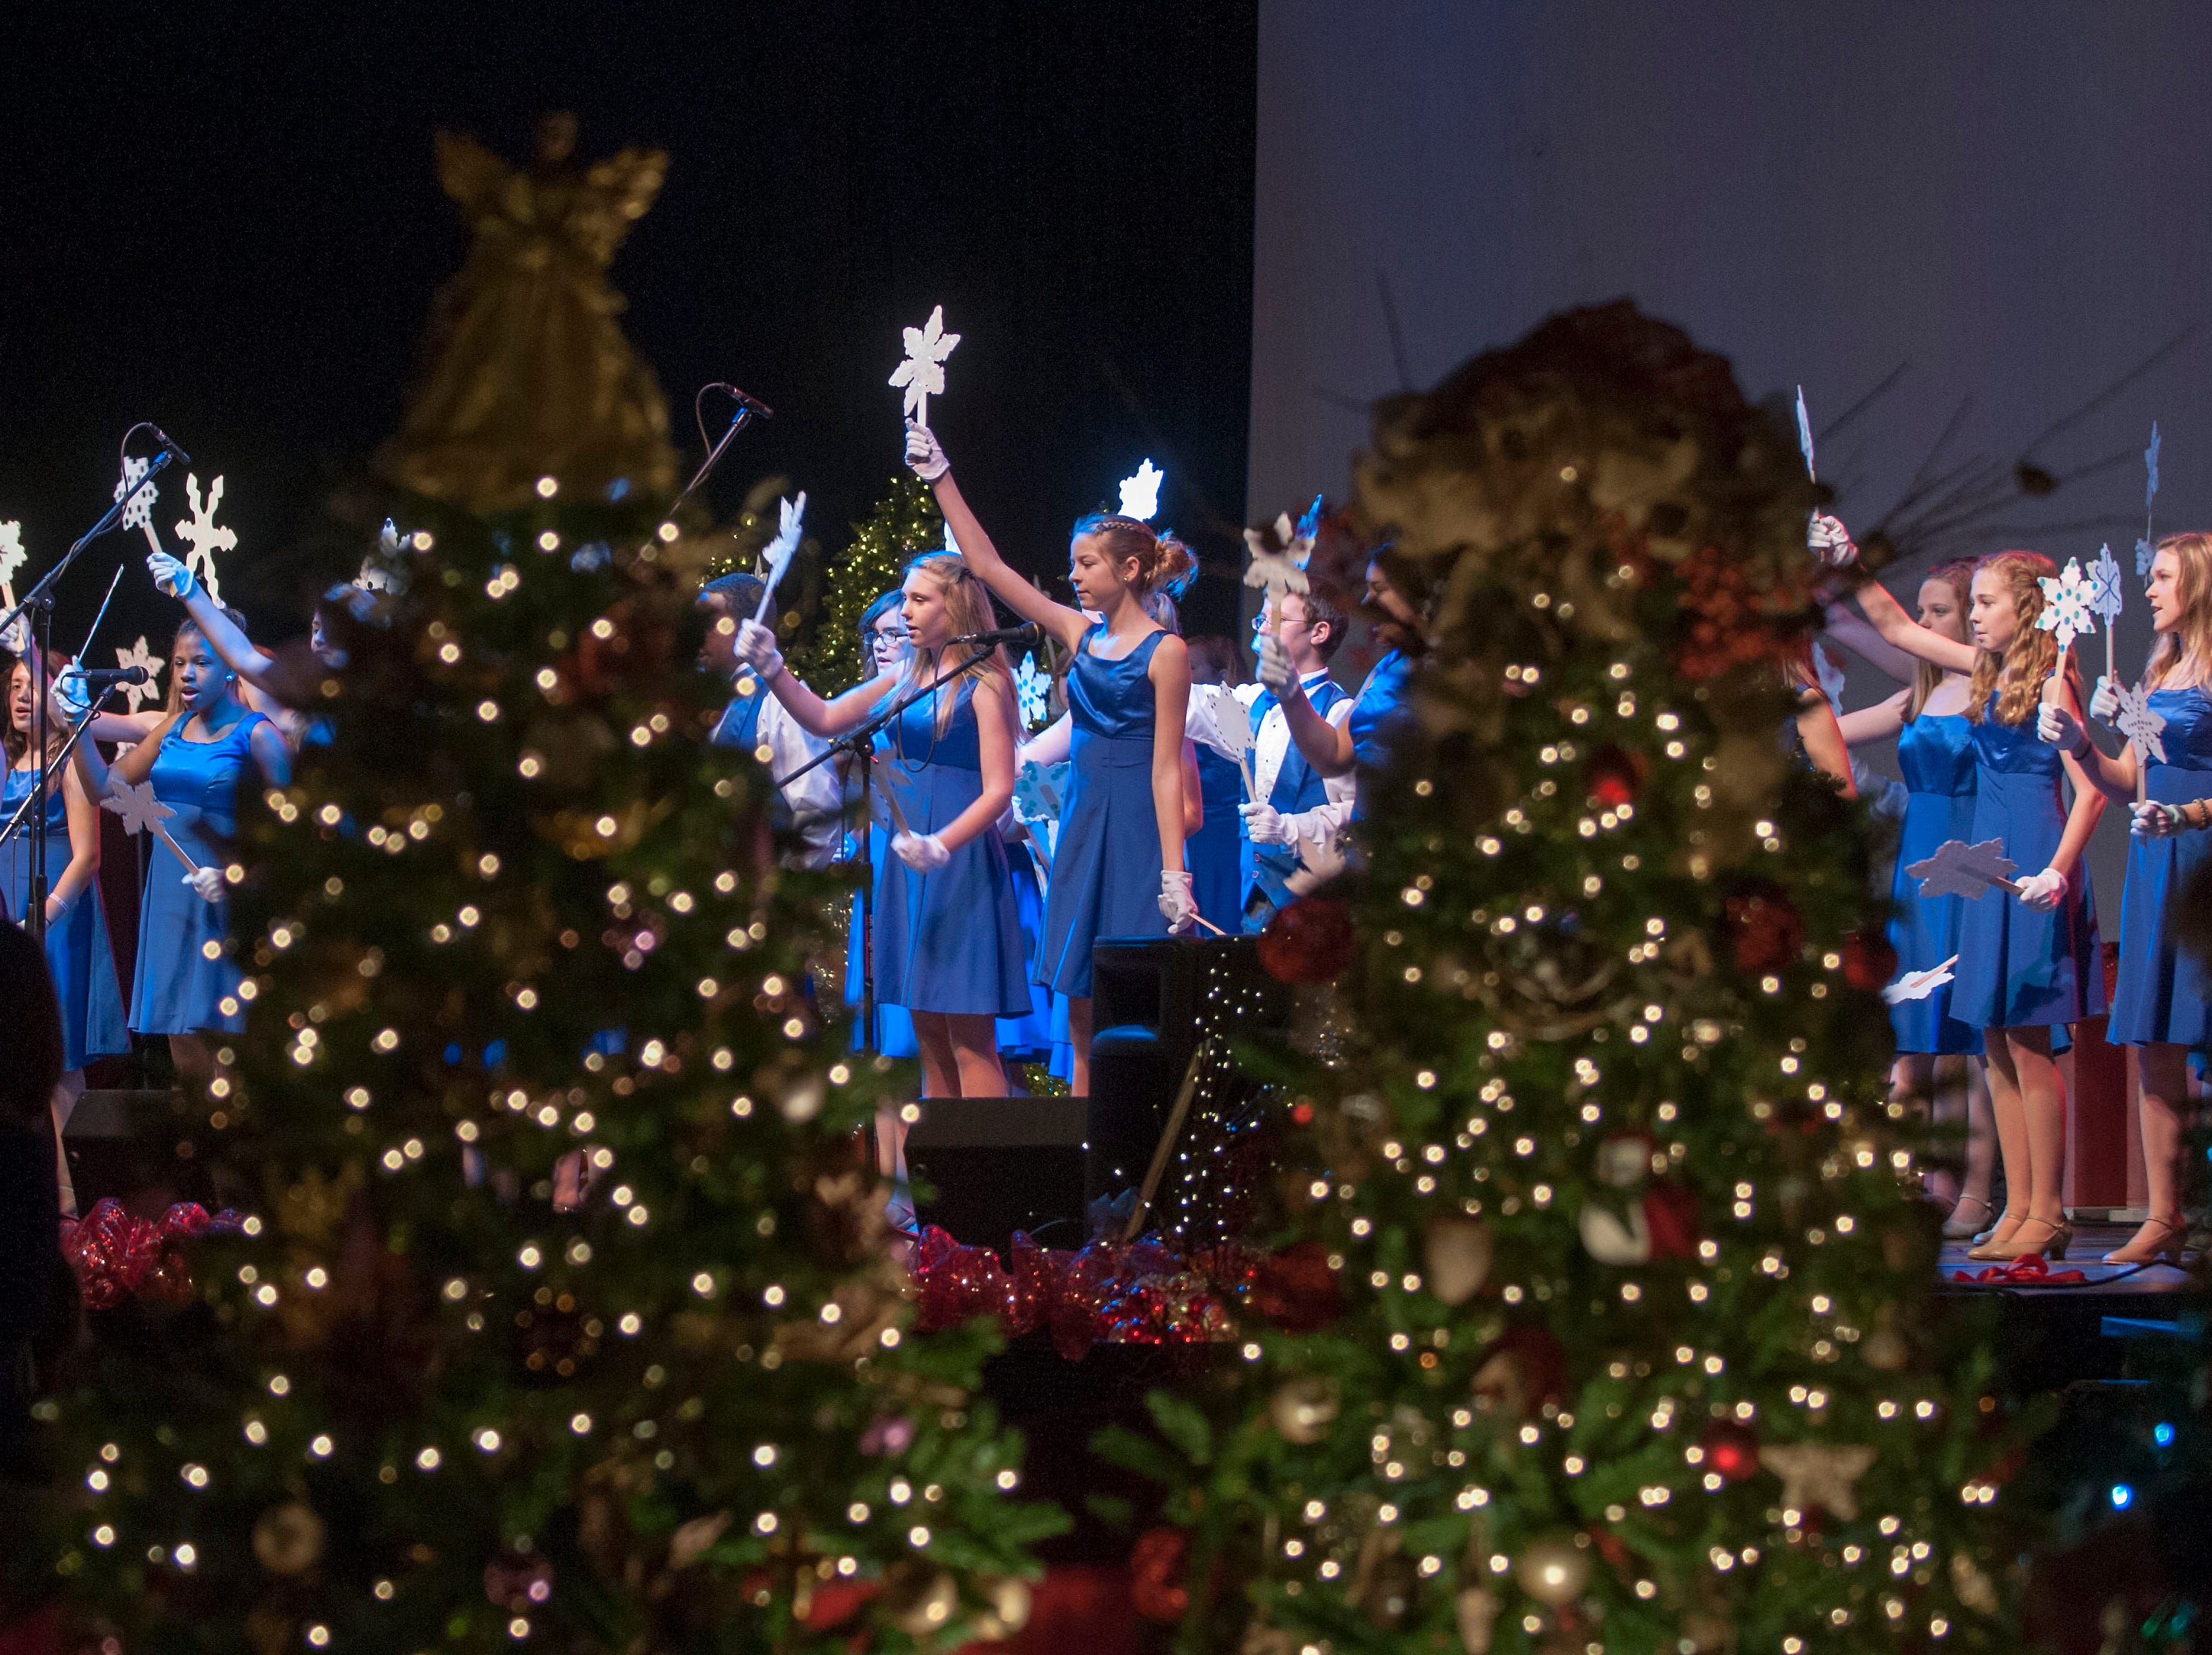 Students from Jefferson Middle School perform on the stage at the 28th Annual Fantasy of Trees. The 28th Fantasy of Trees once again transforms the downtown Knoxville Convention Center into a winter wonderland of decorated trees, gingerbread houses, holiday shops and children's activities, helping move Thanksgiving week into the Christmas season. ( J. MILES CARY/NEWS SENTINEL )